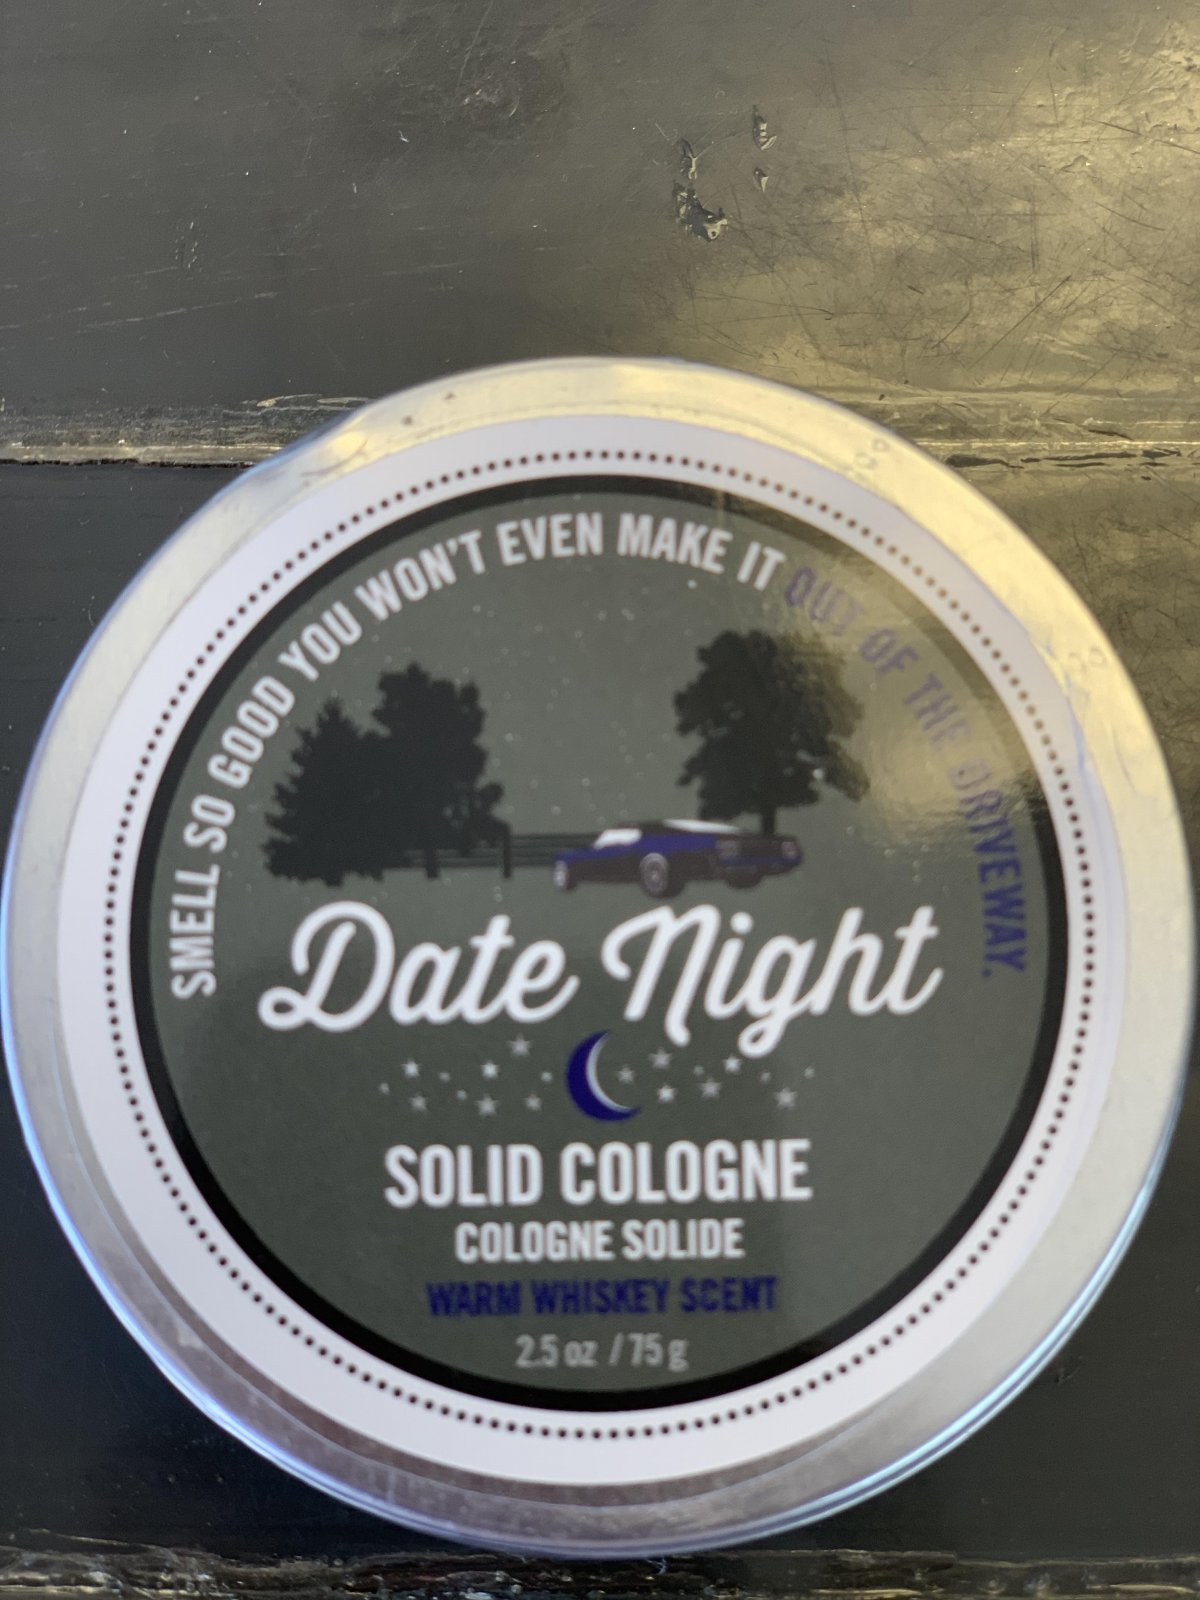 Date Night Cologne